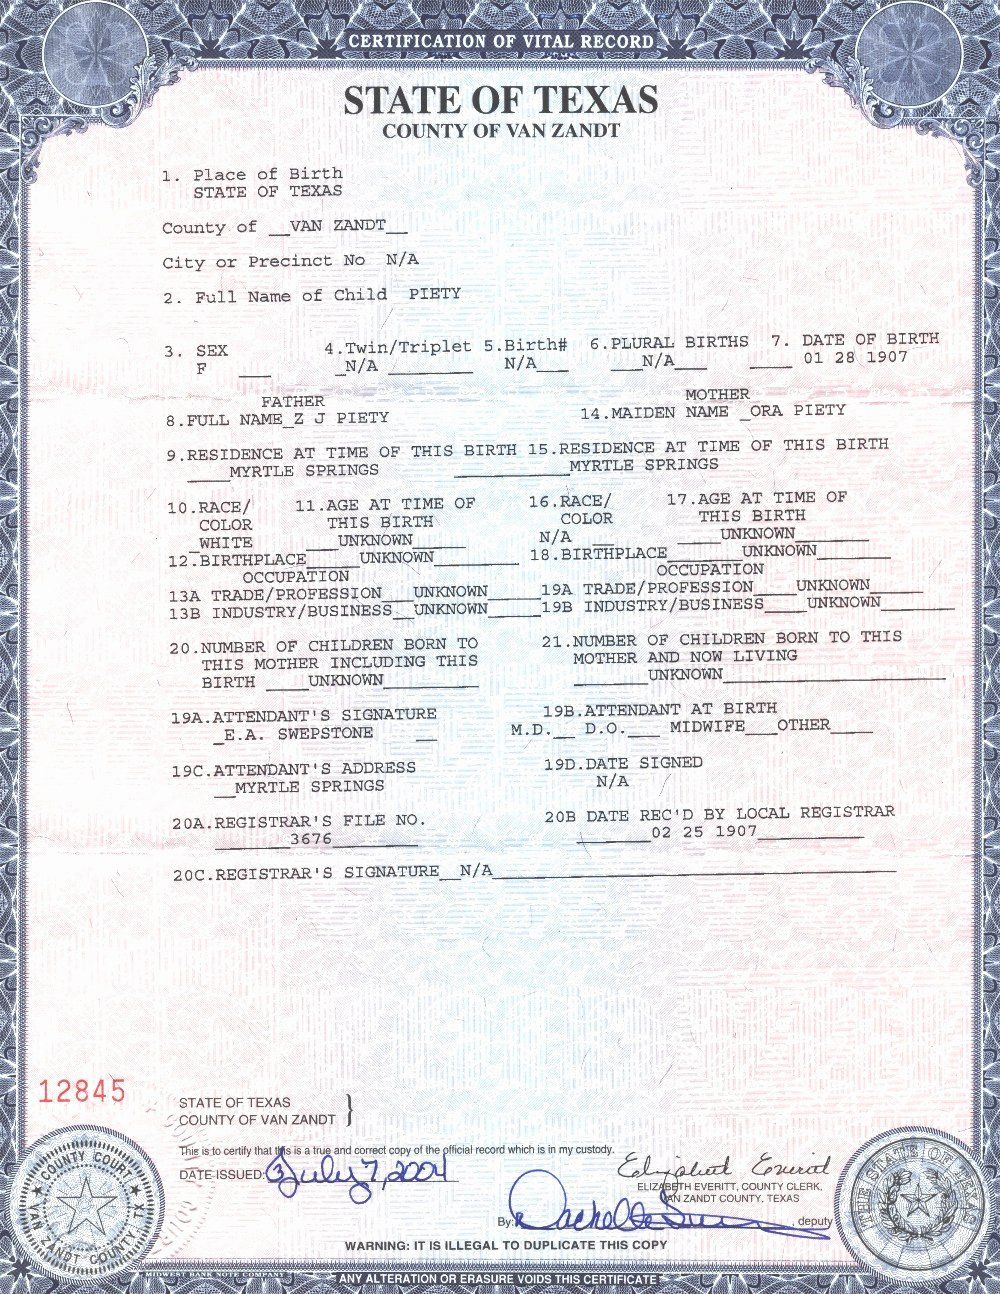 birth certificate texas form german template templates campbell twimg pbs copy dannybarrantes records identification mail born